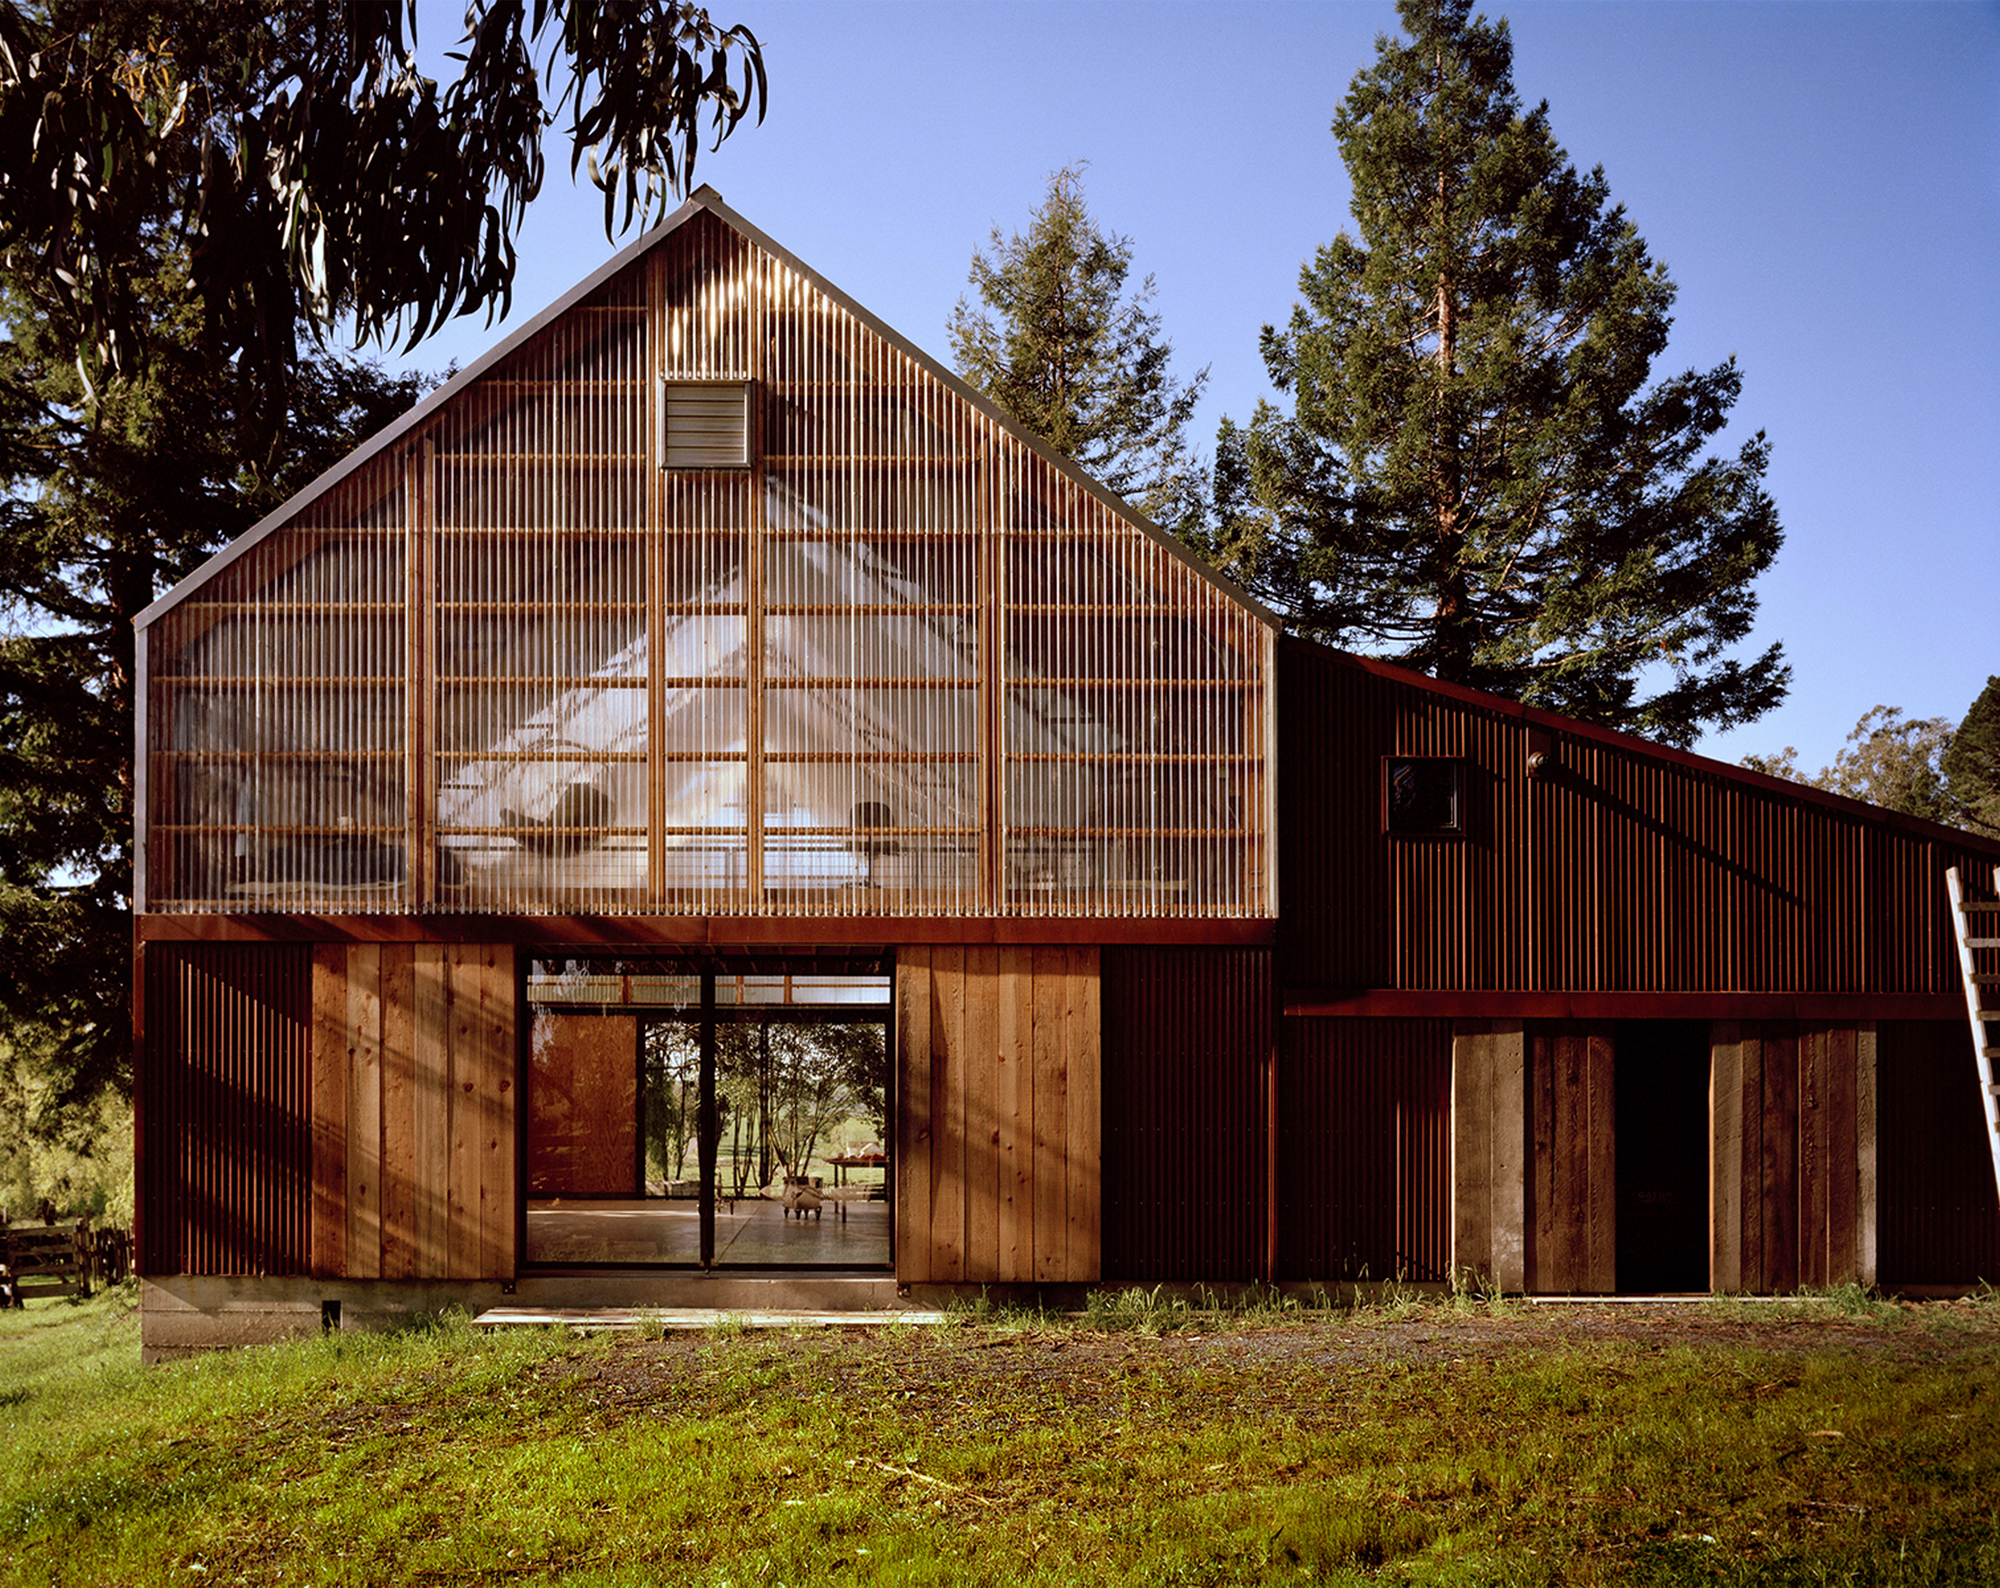 Photography Studio & Workshop / Kennerly Architecture